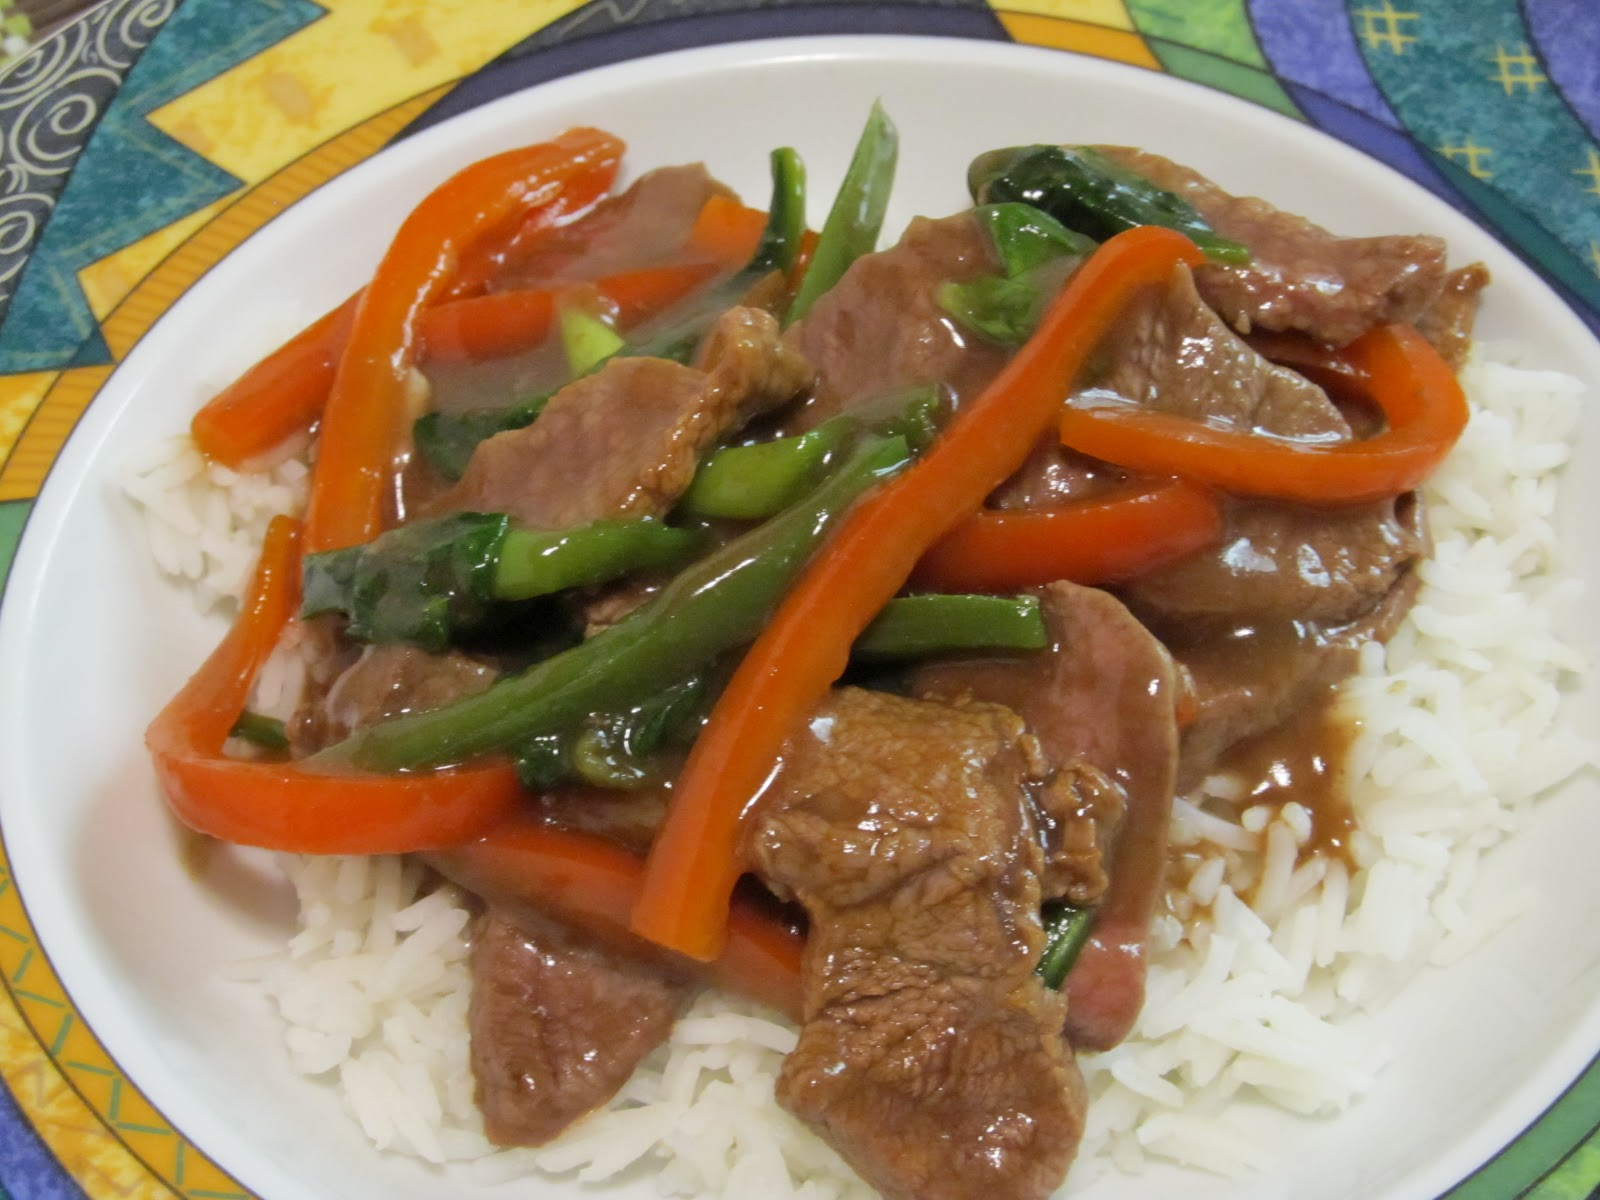 Jenn's Food Journey: Korean Beef Stir-Fry